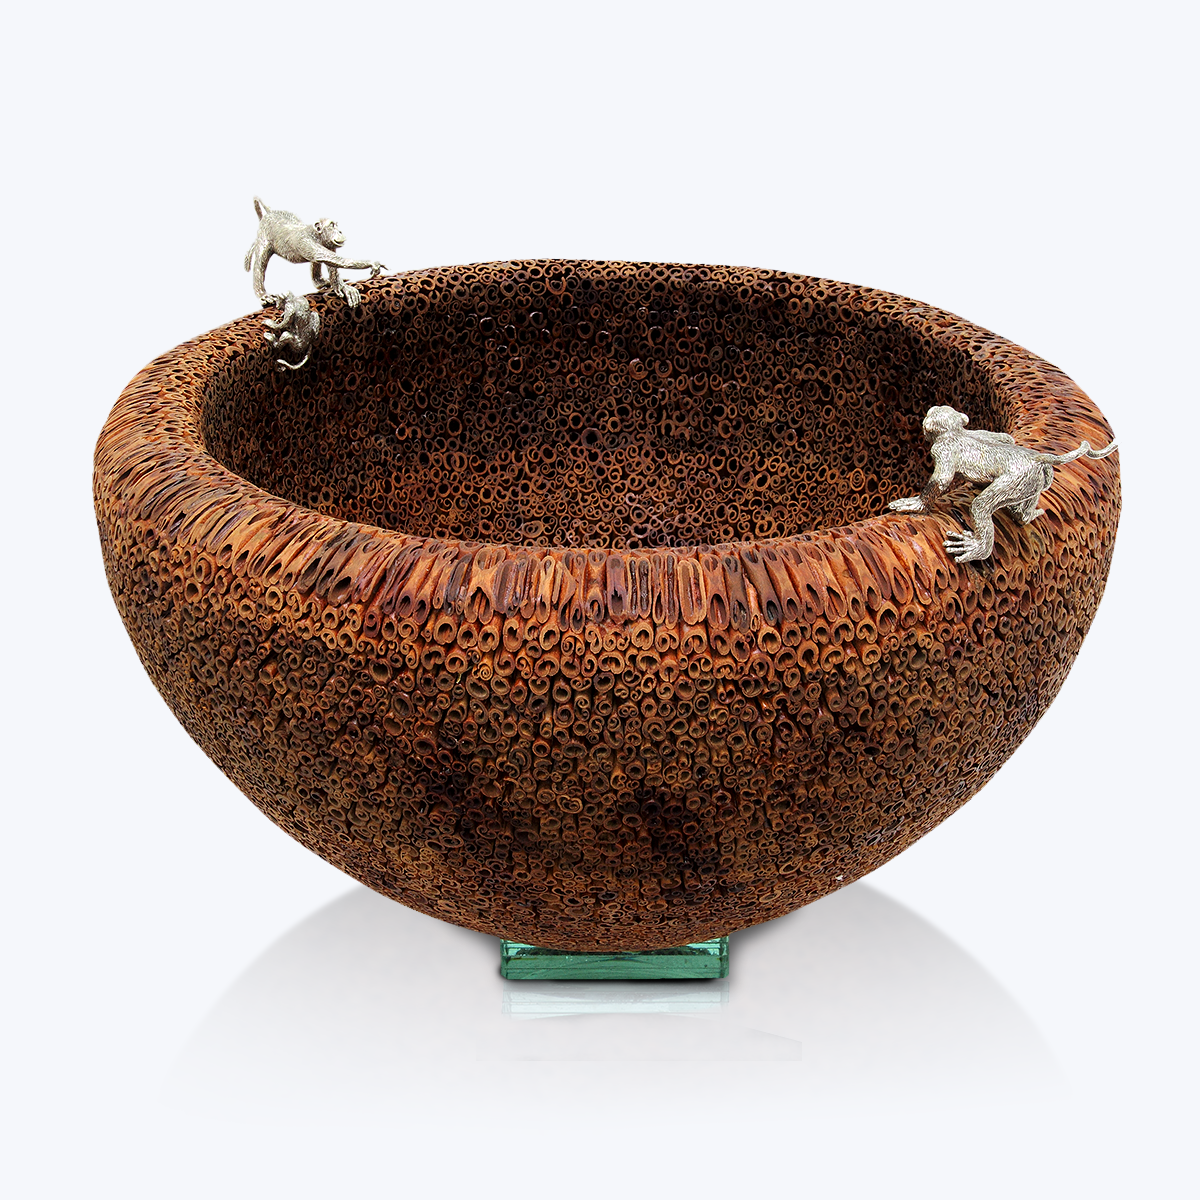 Cinnamon Bowl with Silver Monkeys